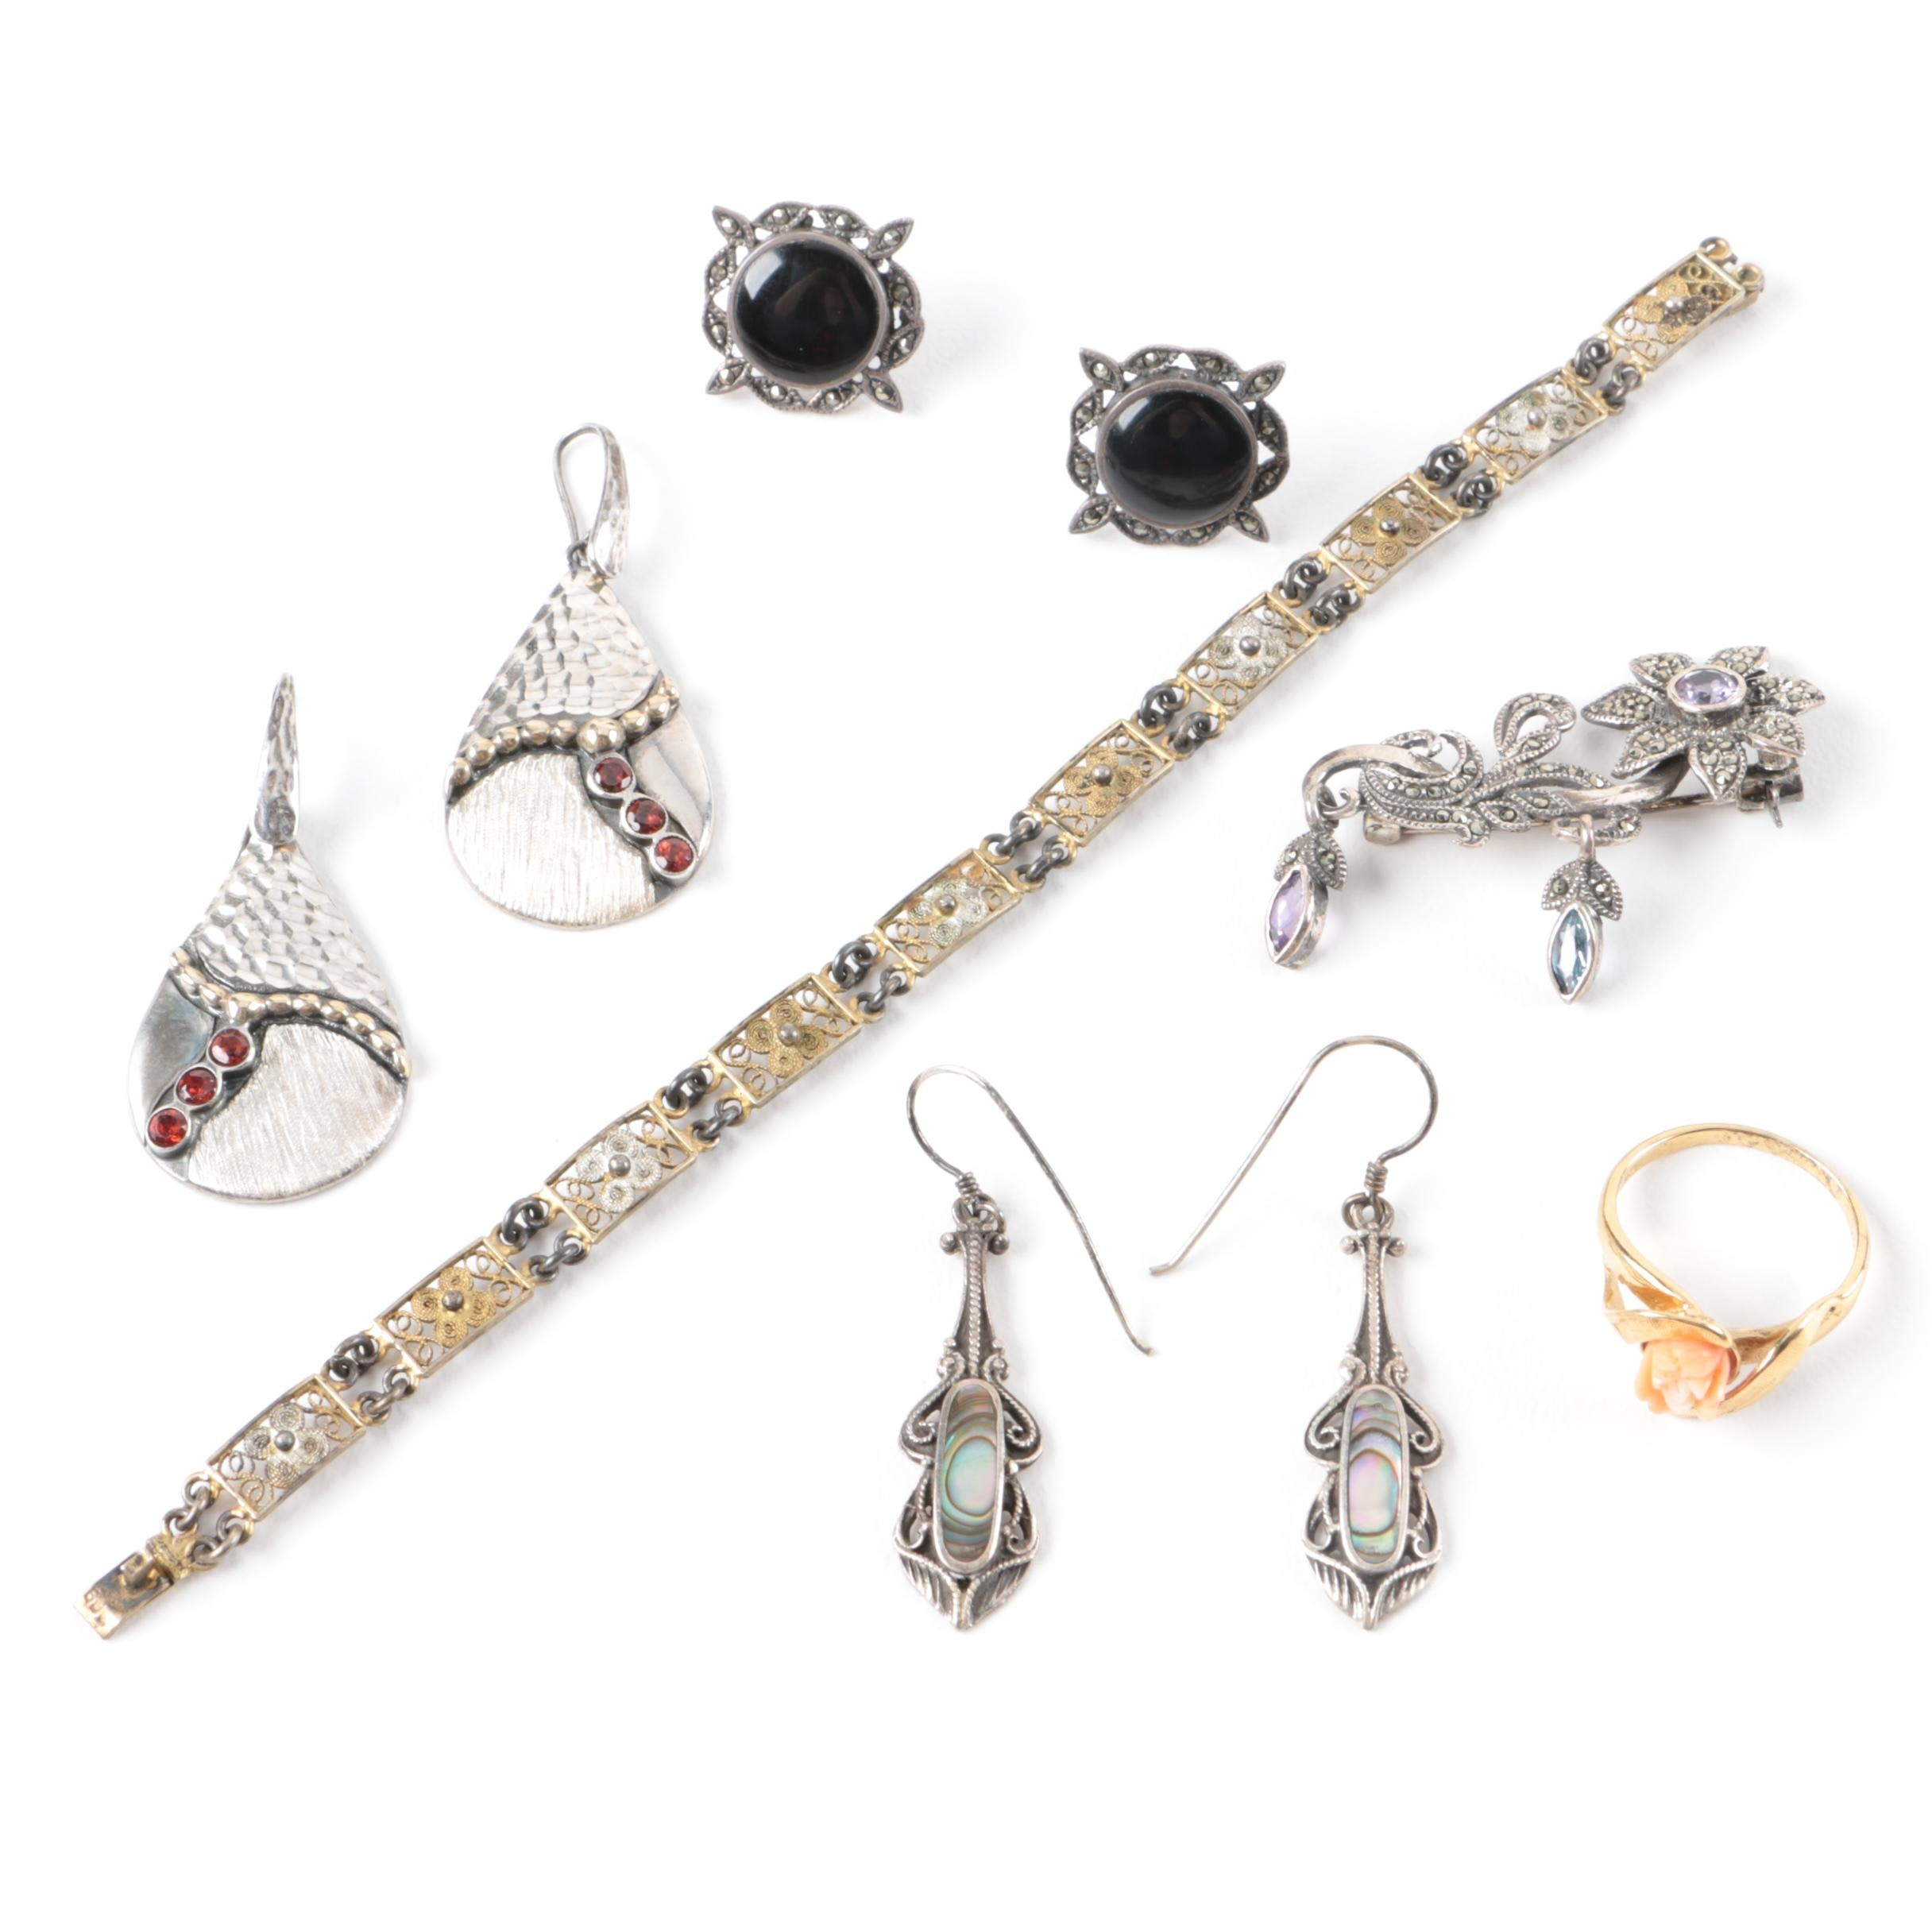 Sterling and 800 Silver Jewelry Featuring Abalone, Coral and Garnet